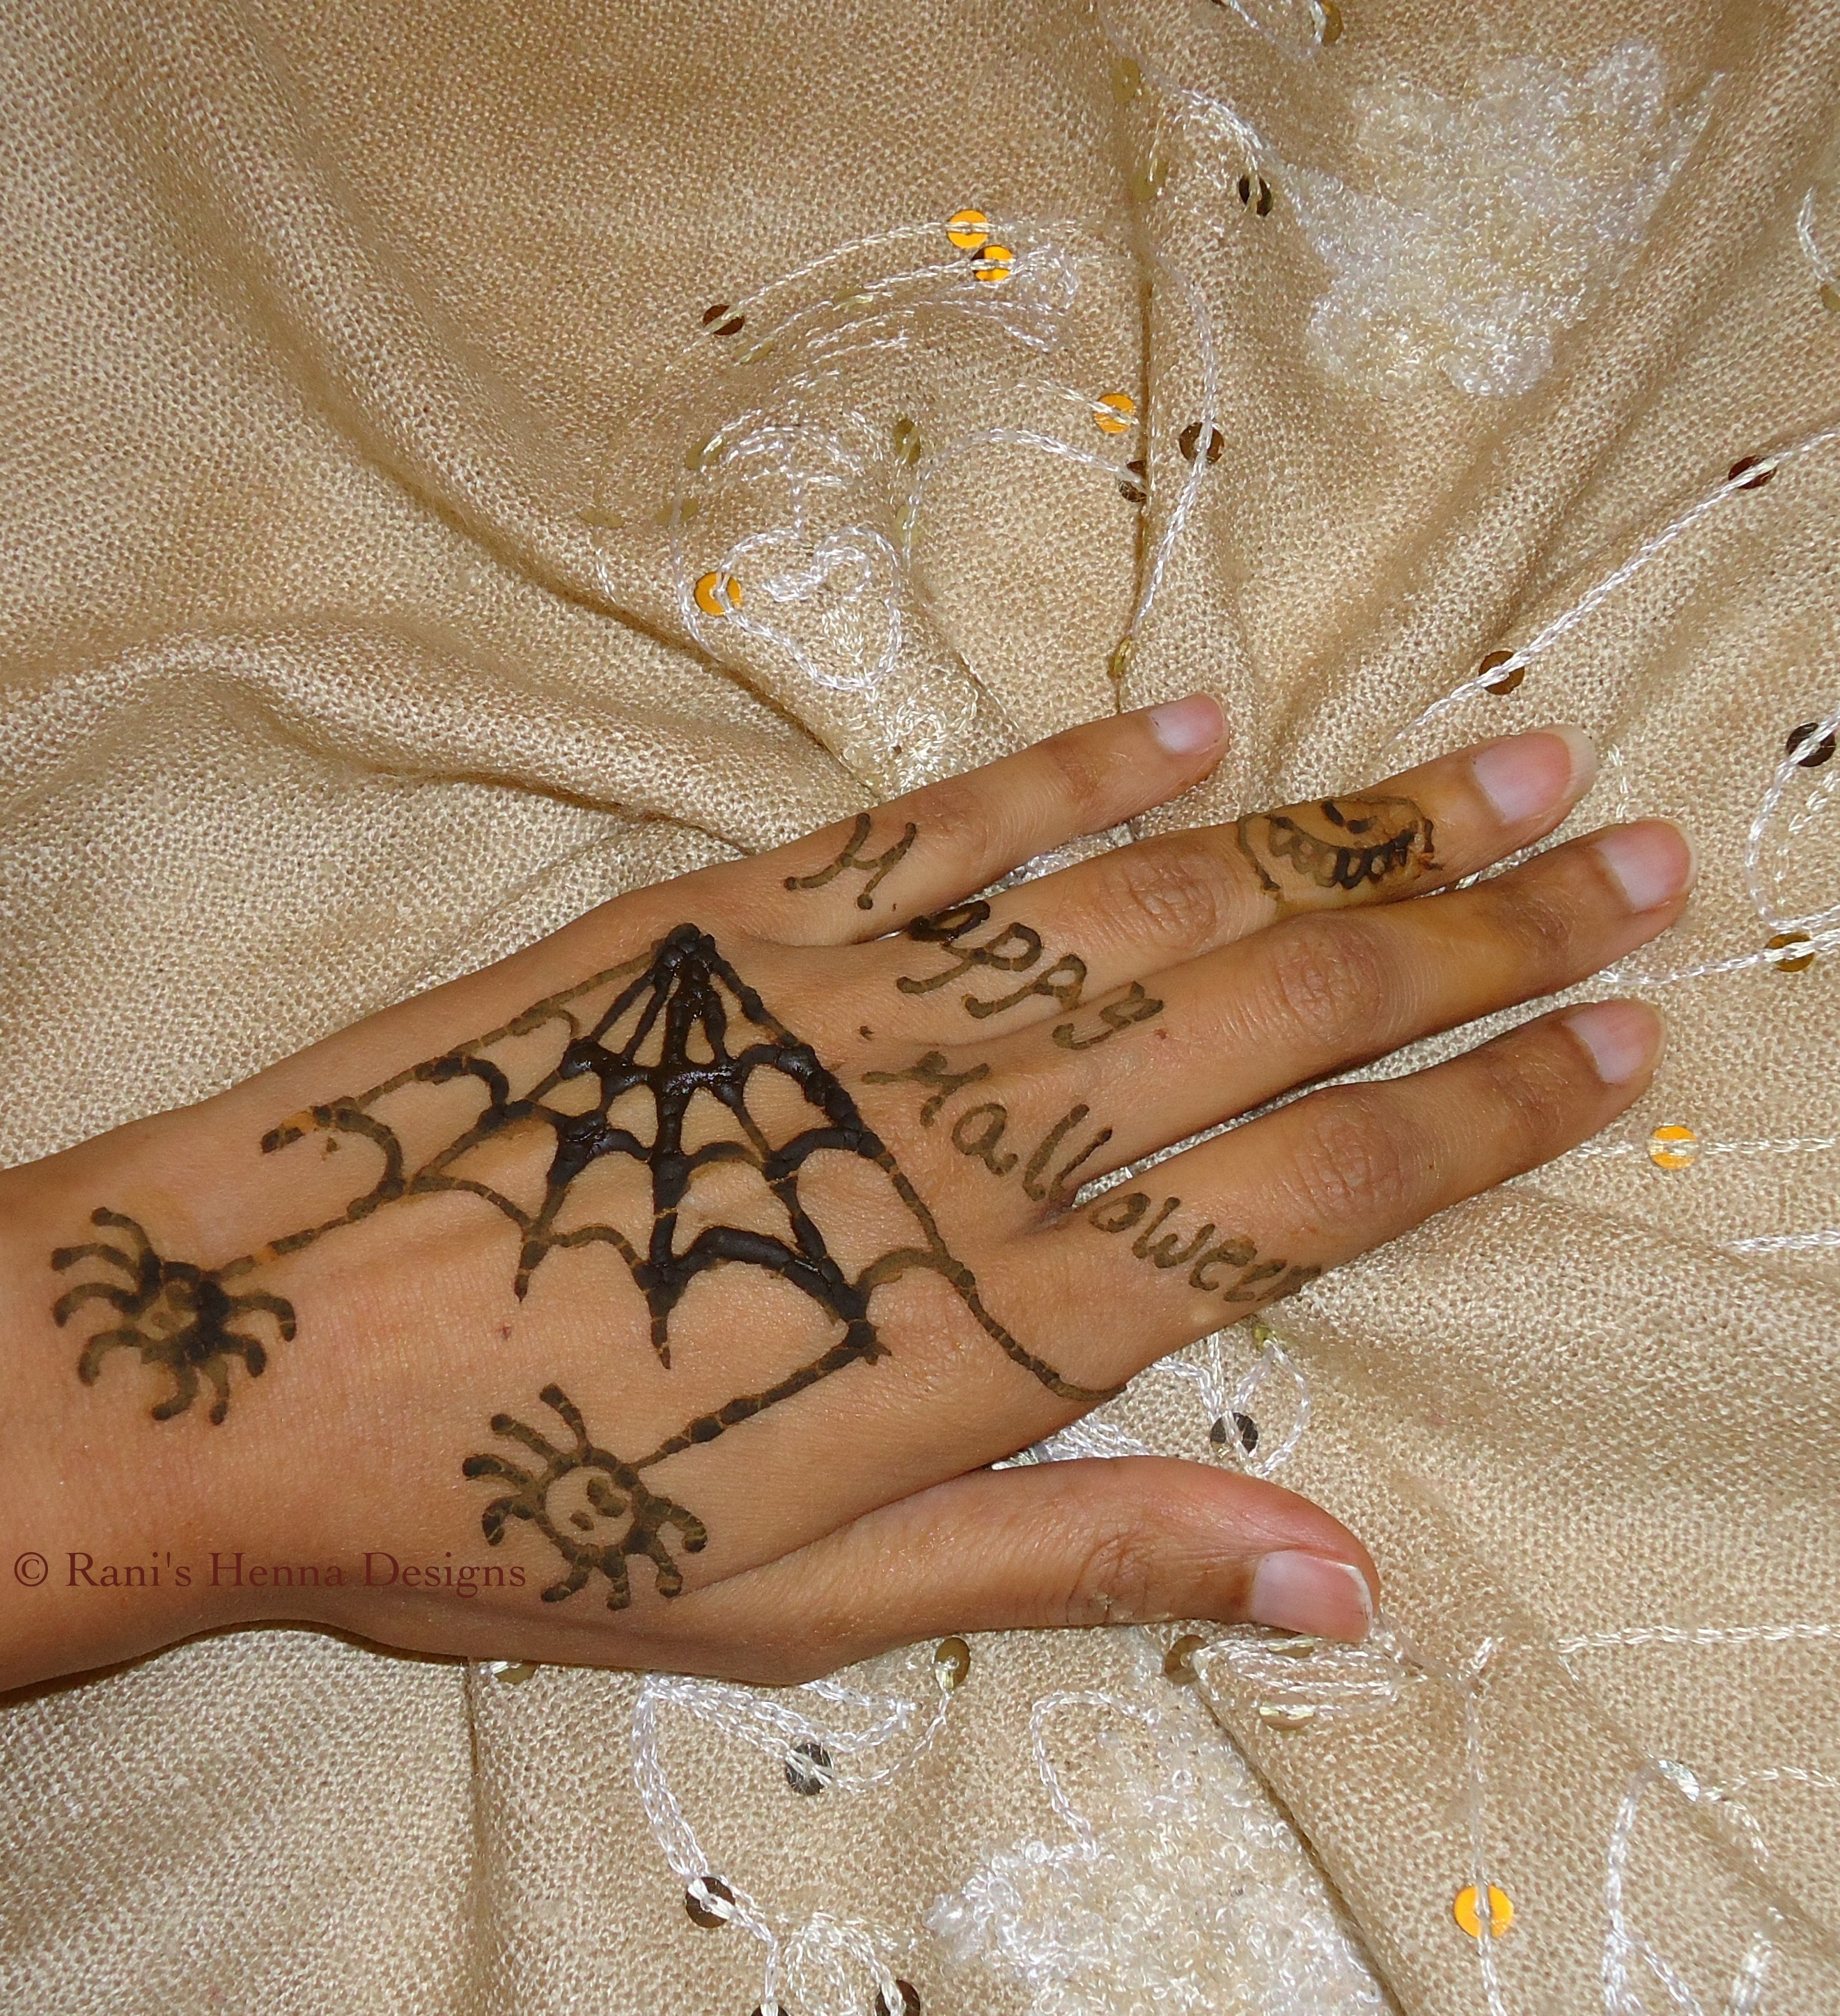 Henna Tattoo Rani39s Henna Designs